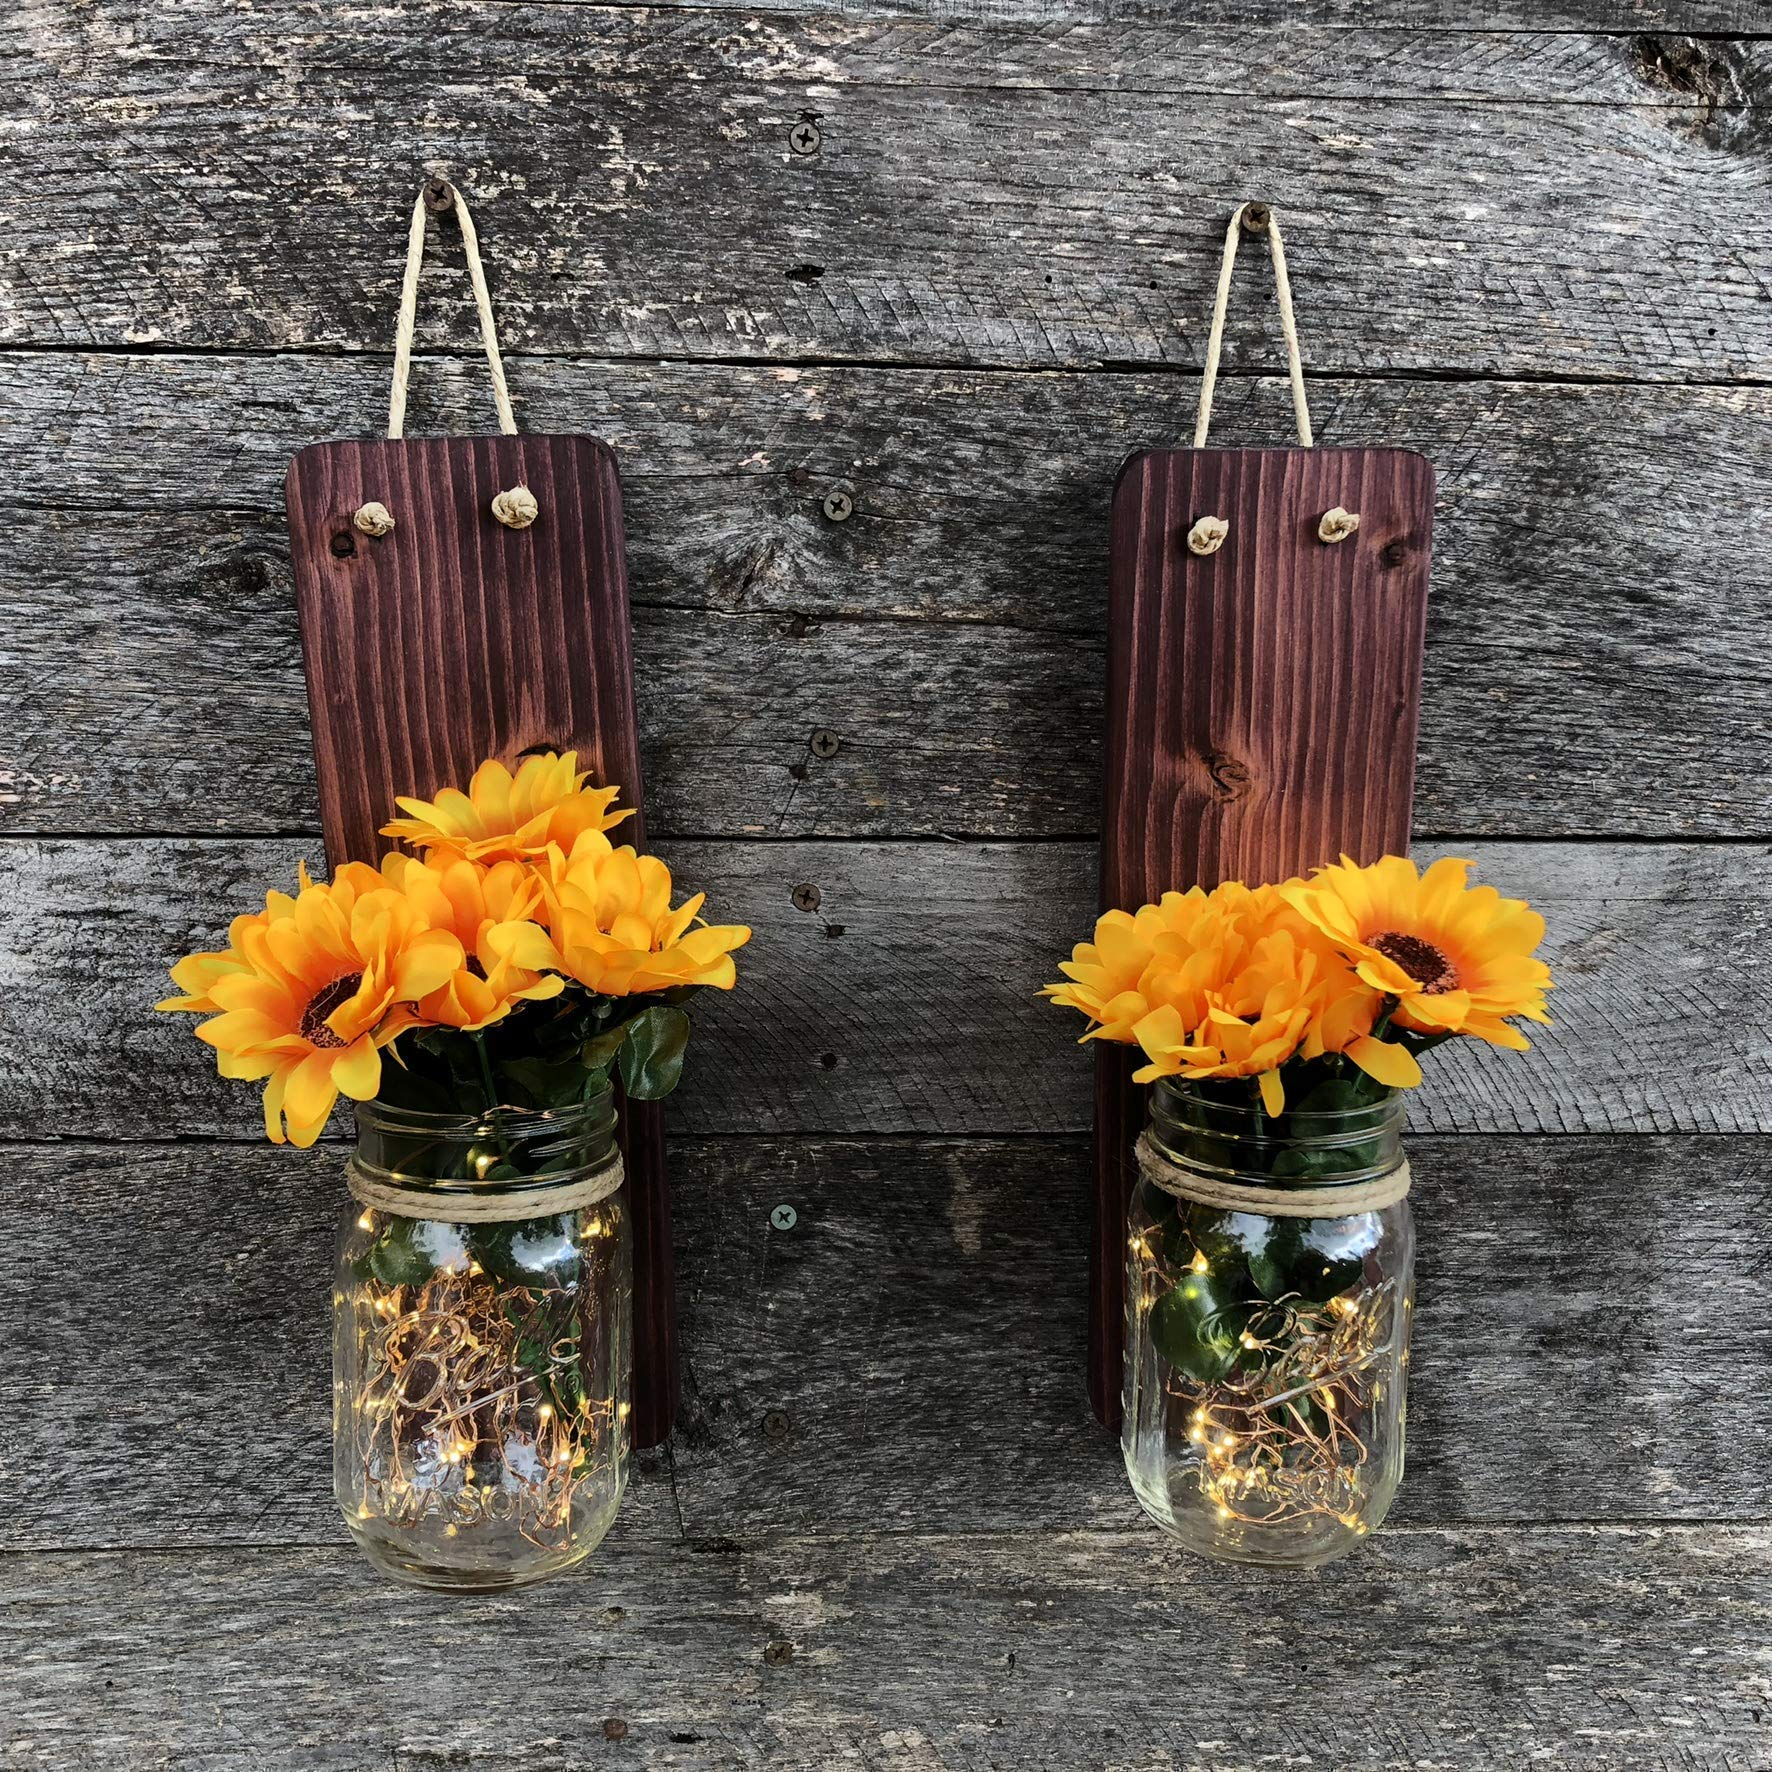 Rustic Mason Jar Wall Sconce Set of 2 with Sunflowers and LED Lights by Tennessee Wicks